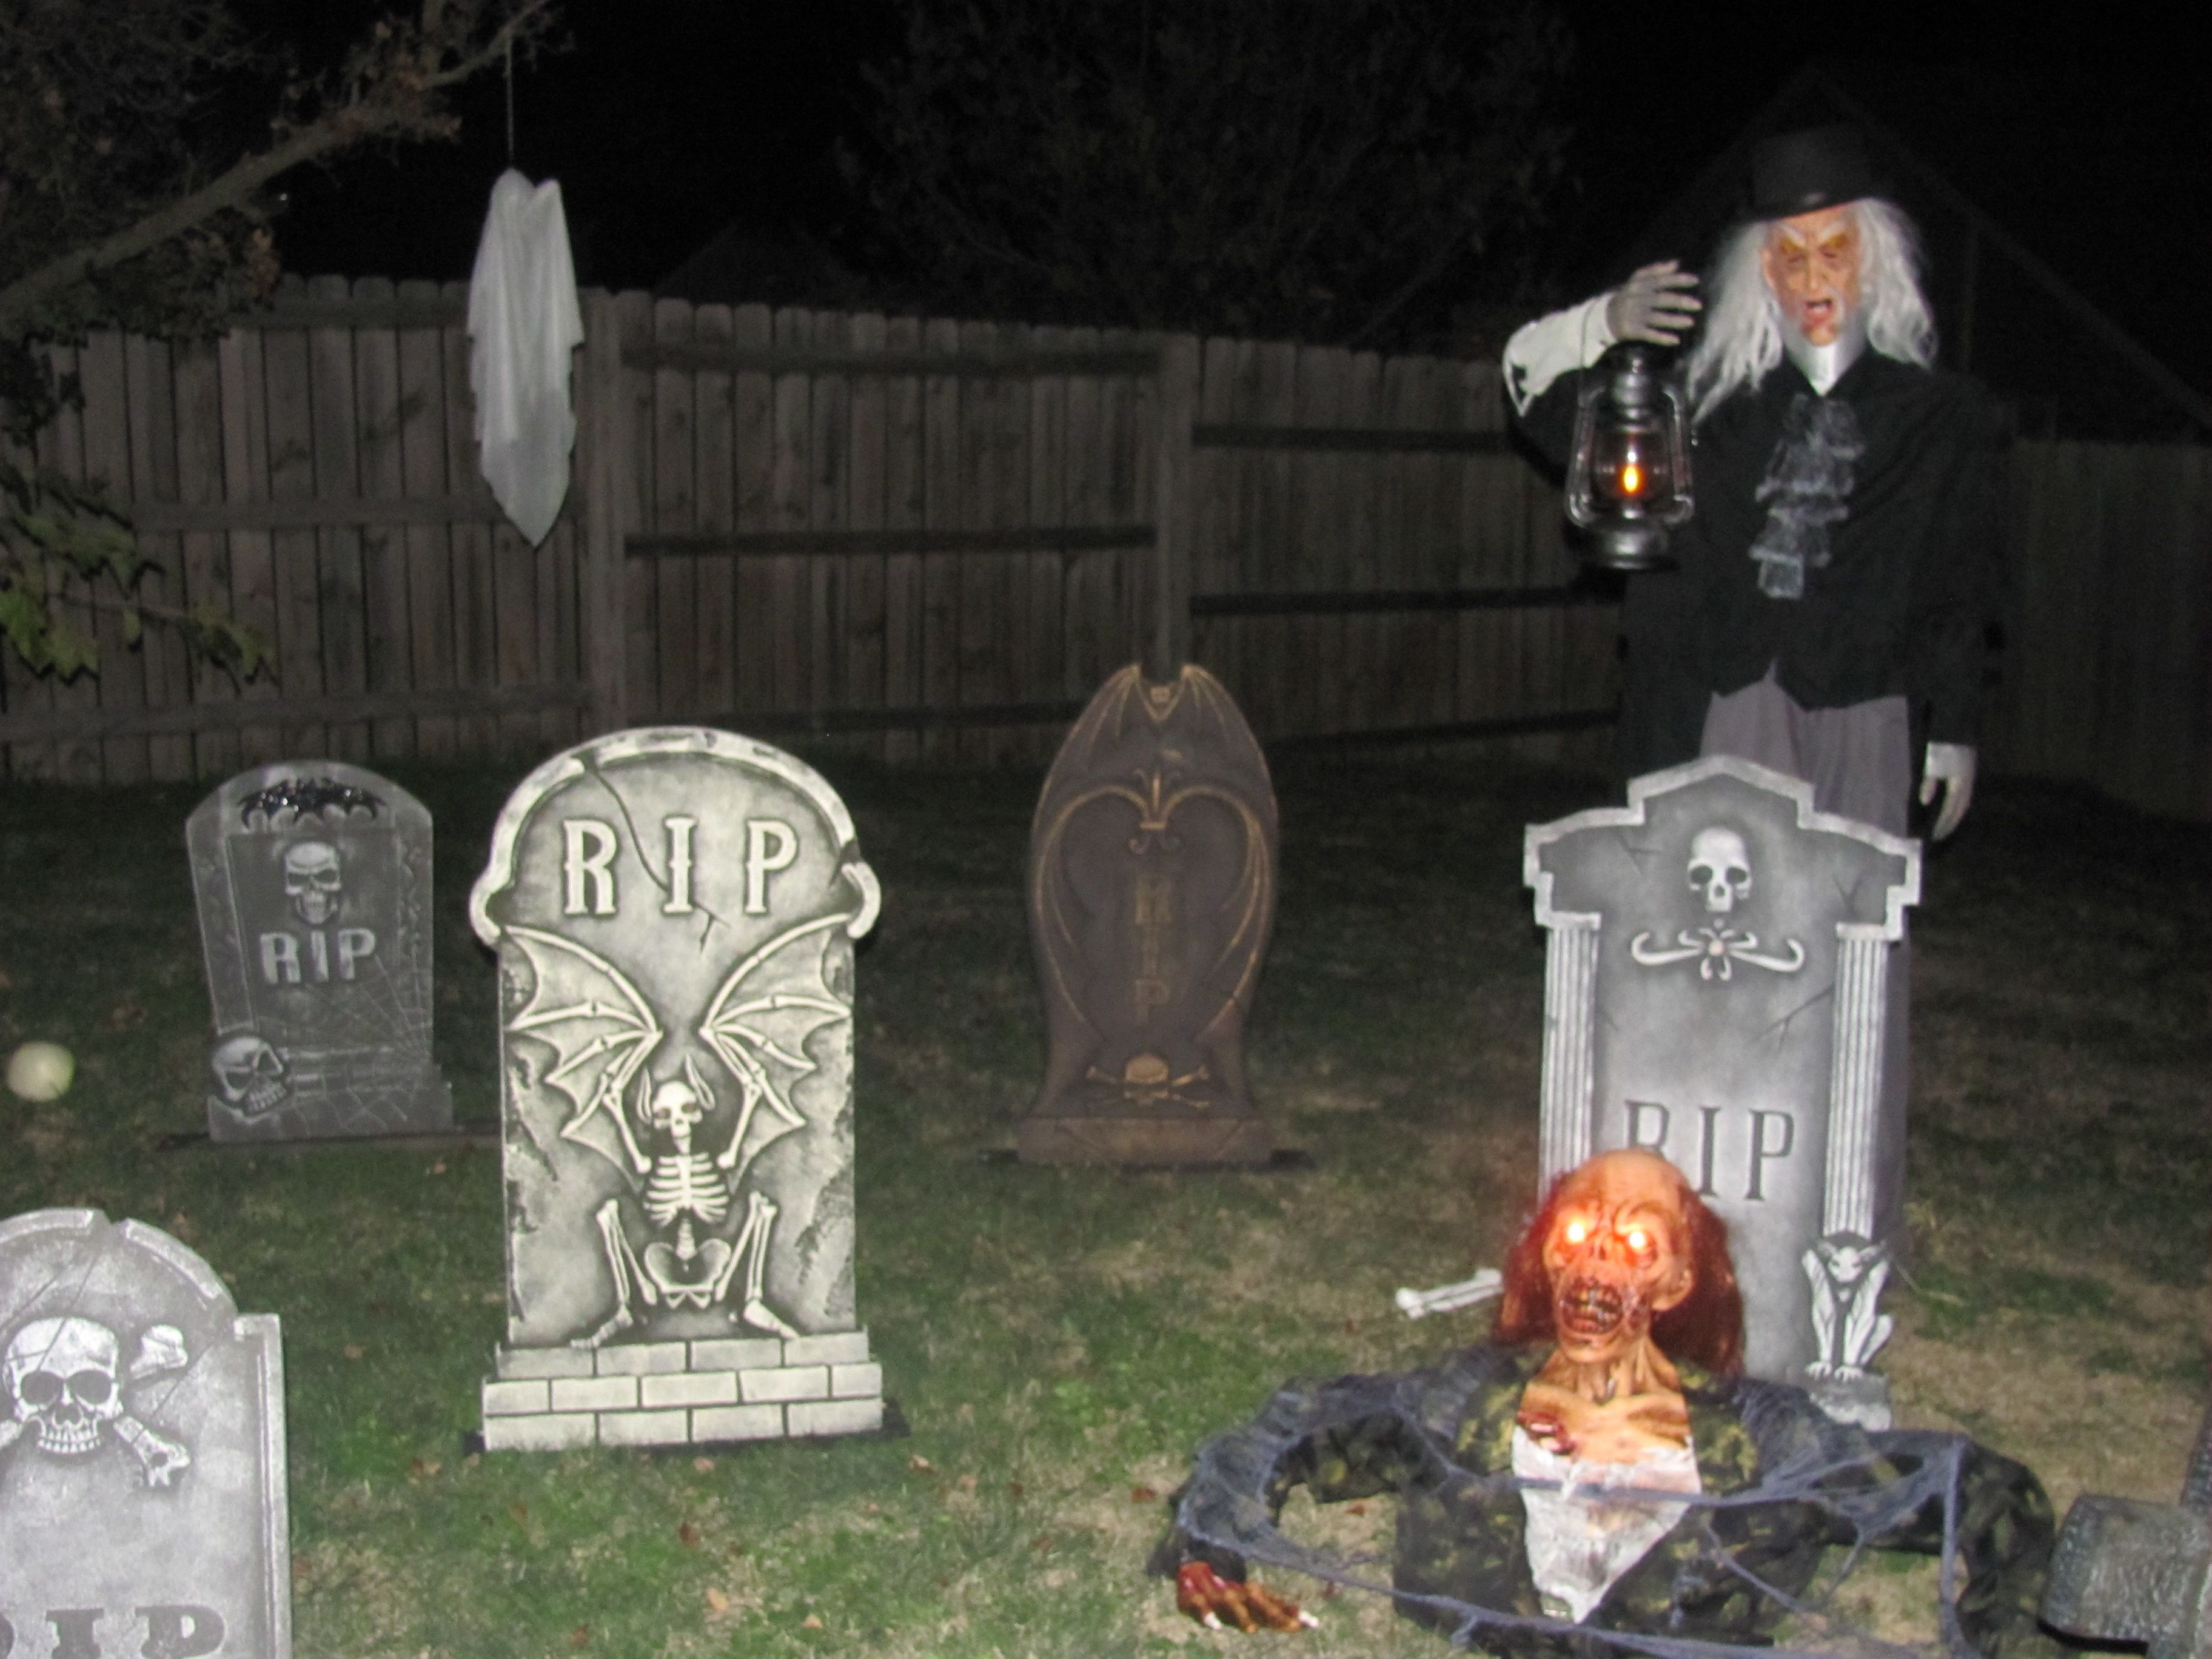 Grave yard: i made the grave digger out of pvc pipe and an old